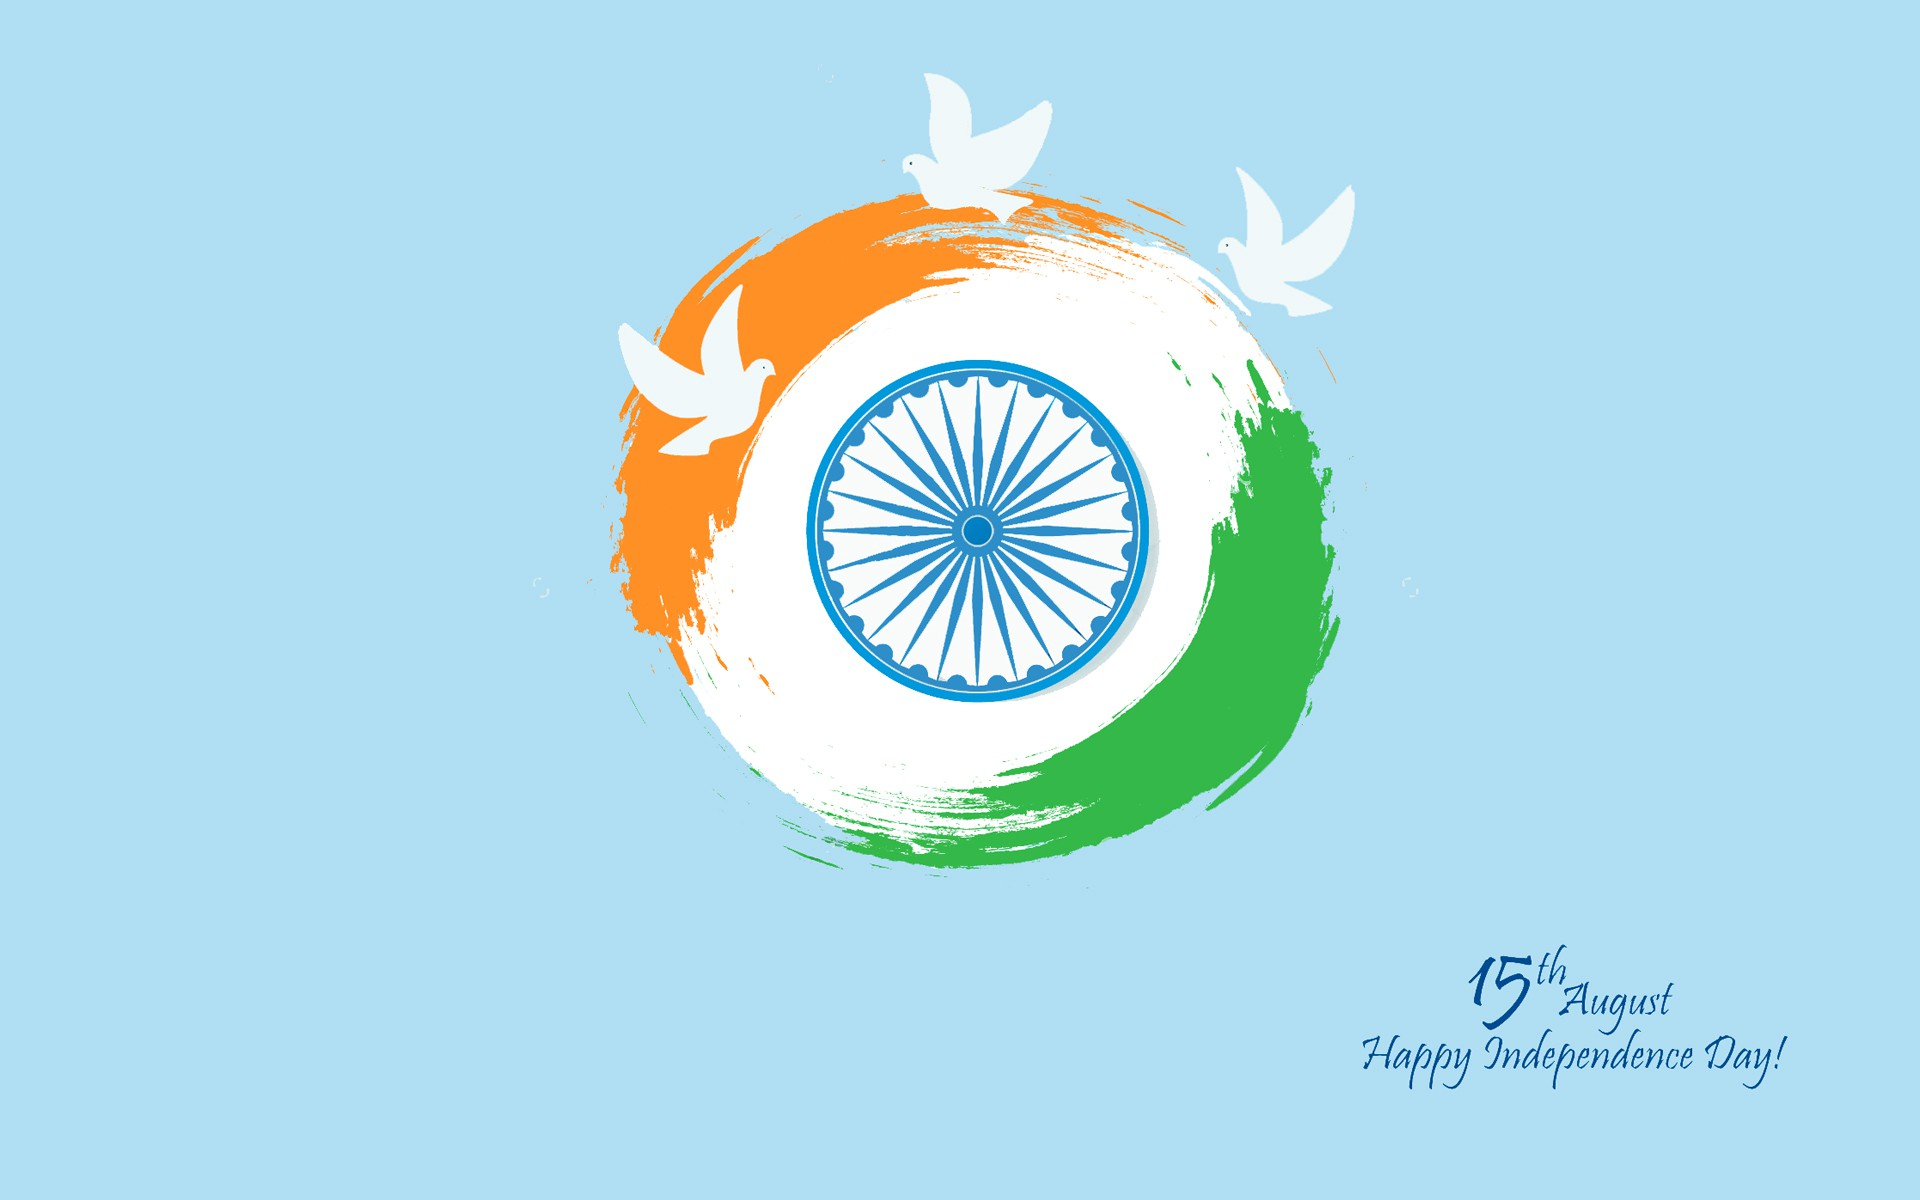 15th August Happy Independence Day Wallpaper